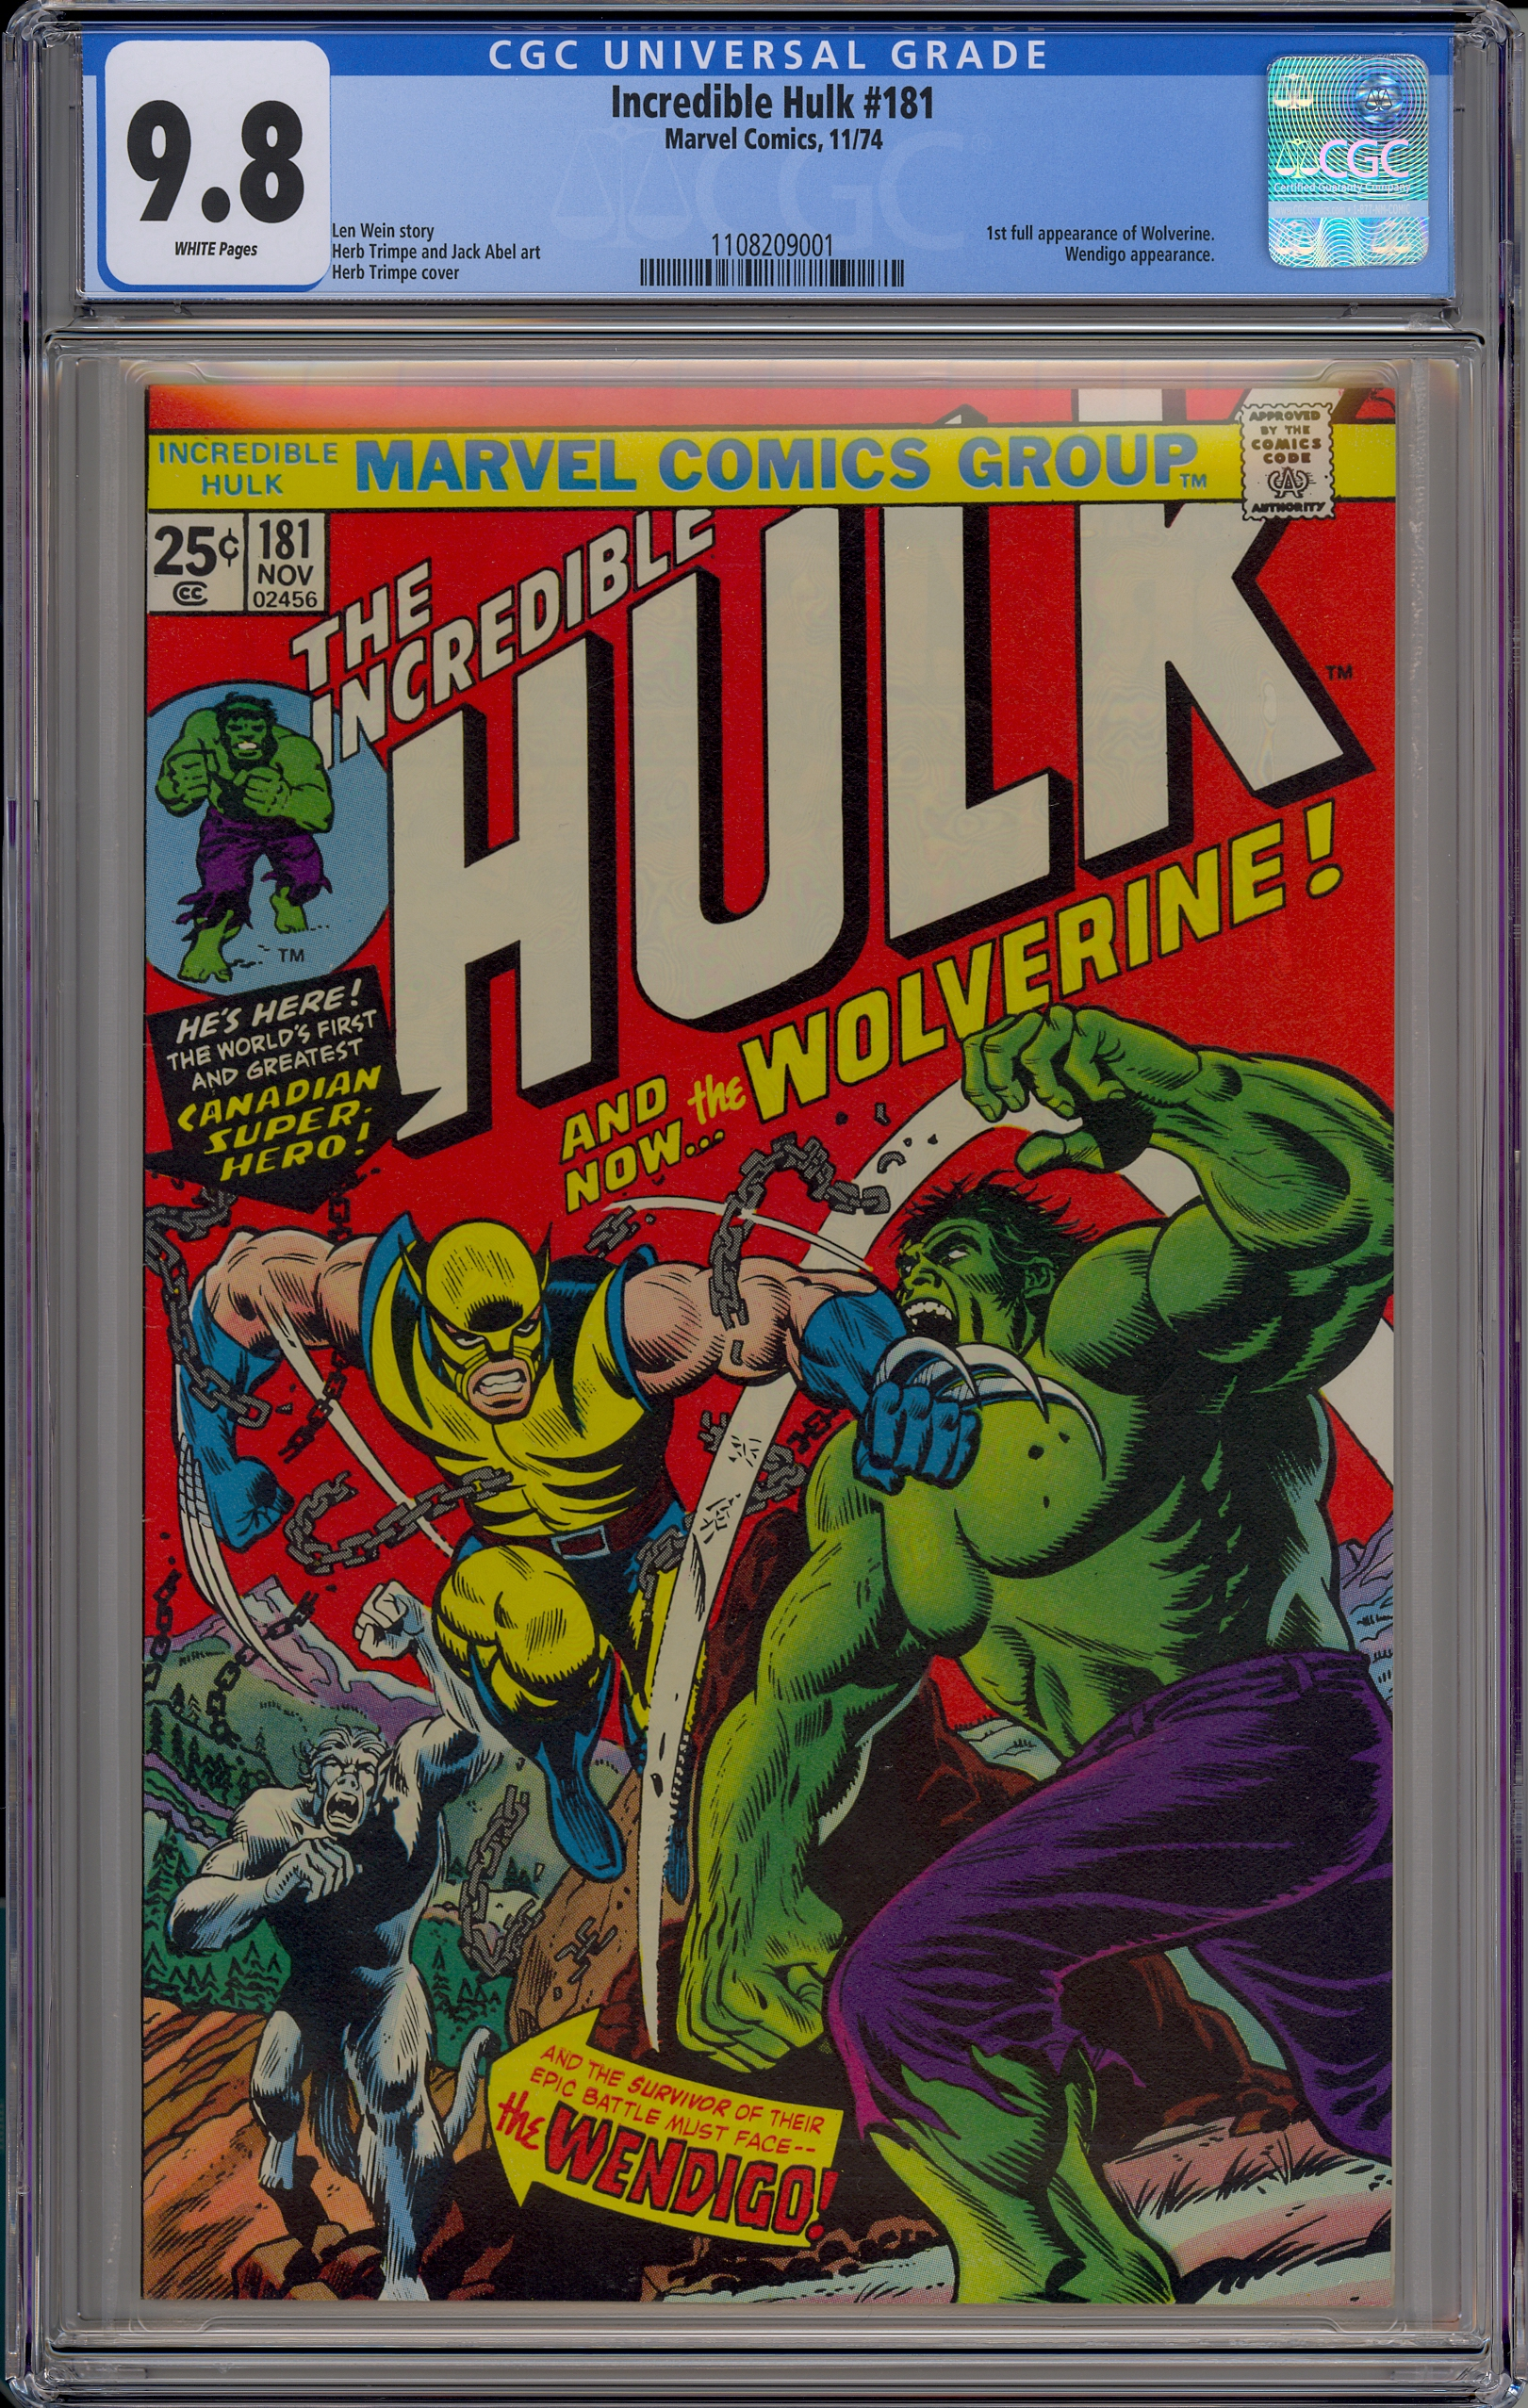 fbd75ac667f Incredible Hulk #181: (1st full appearance of Wolverine)! - CGC ...